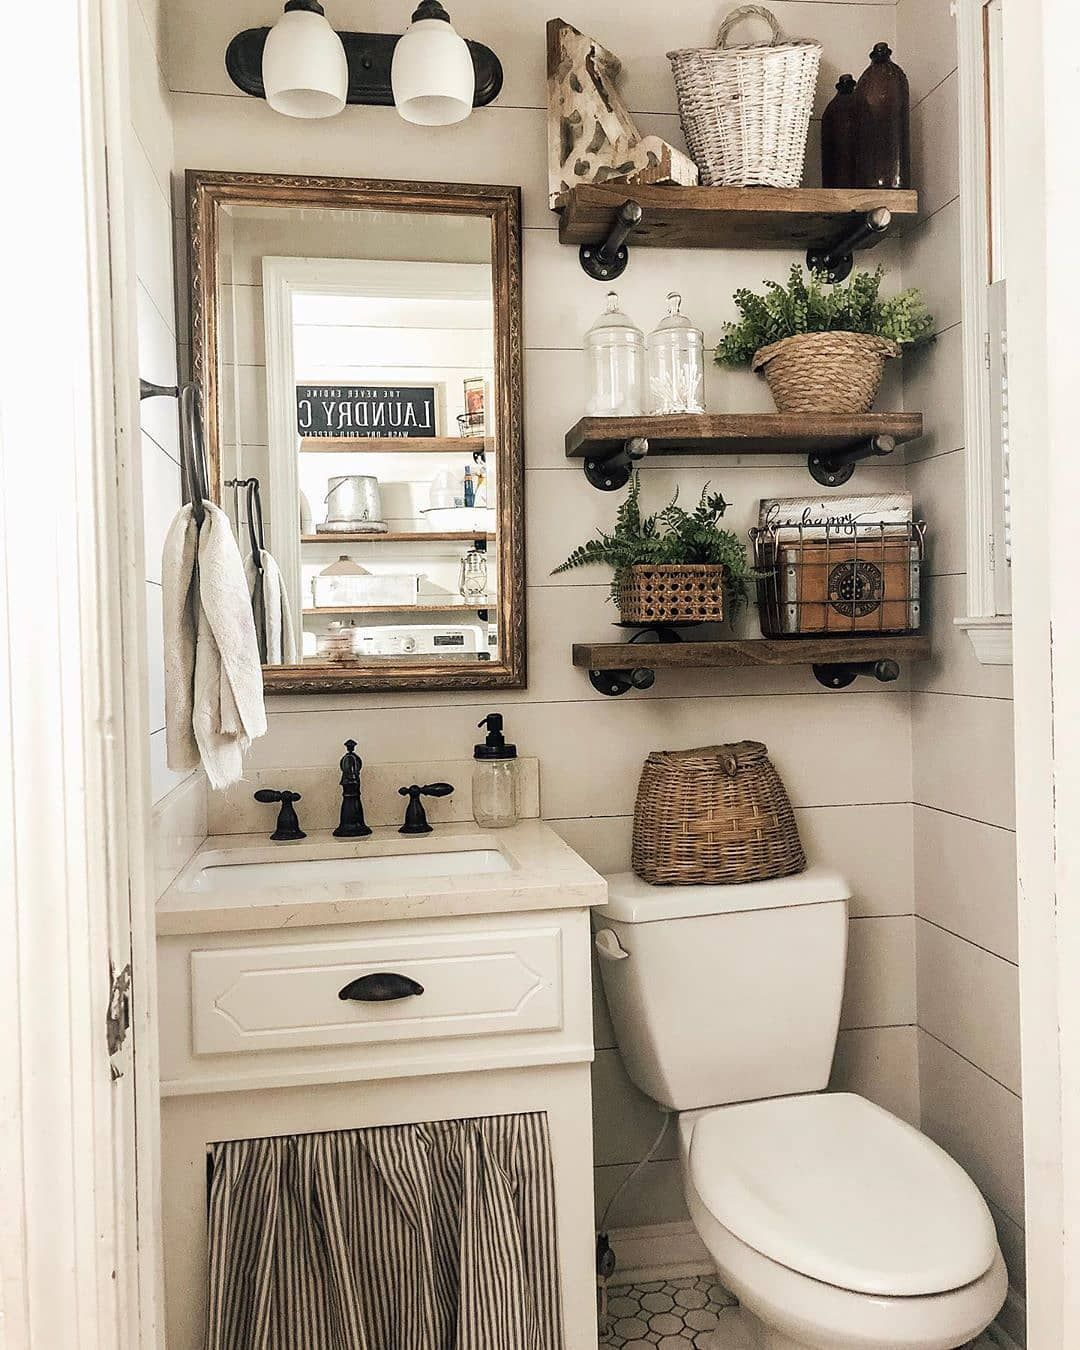 """Photo of Farmhouse Charm 🏡 on Instagram: """"What do you think of this farmhouse bathroom? We love all the little decor pieces! 😍 Do you put any decorations in your bathrooms? 👀 TAG a…"""""""